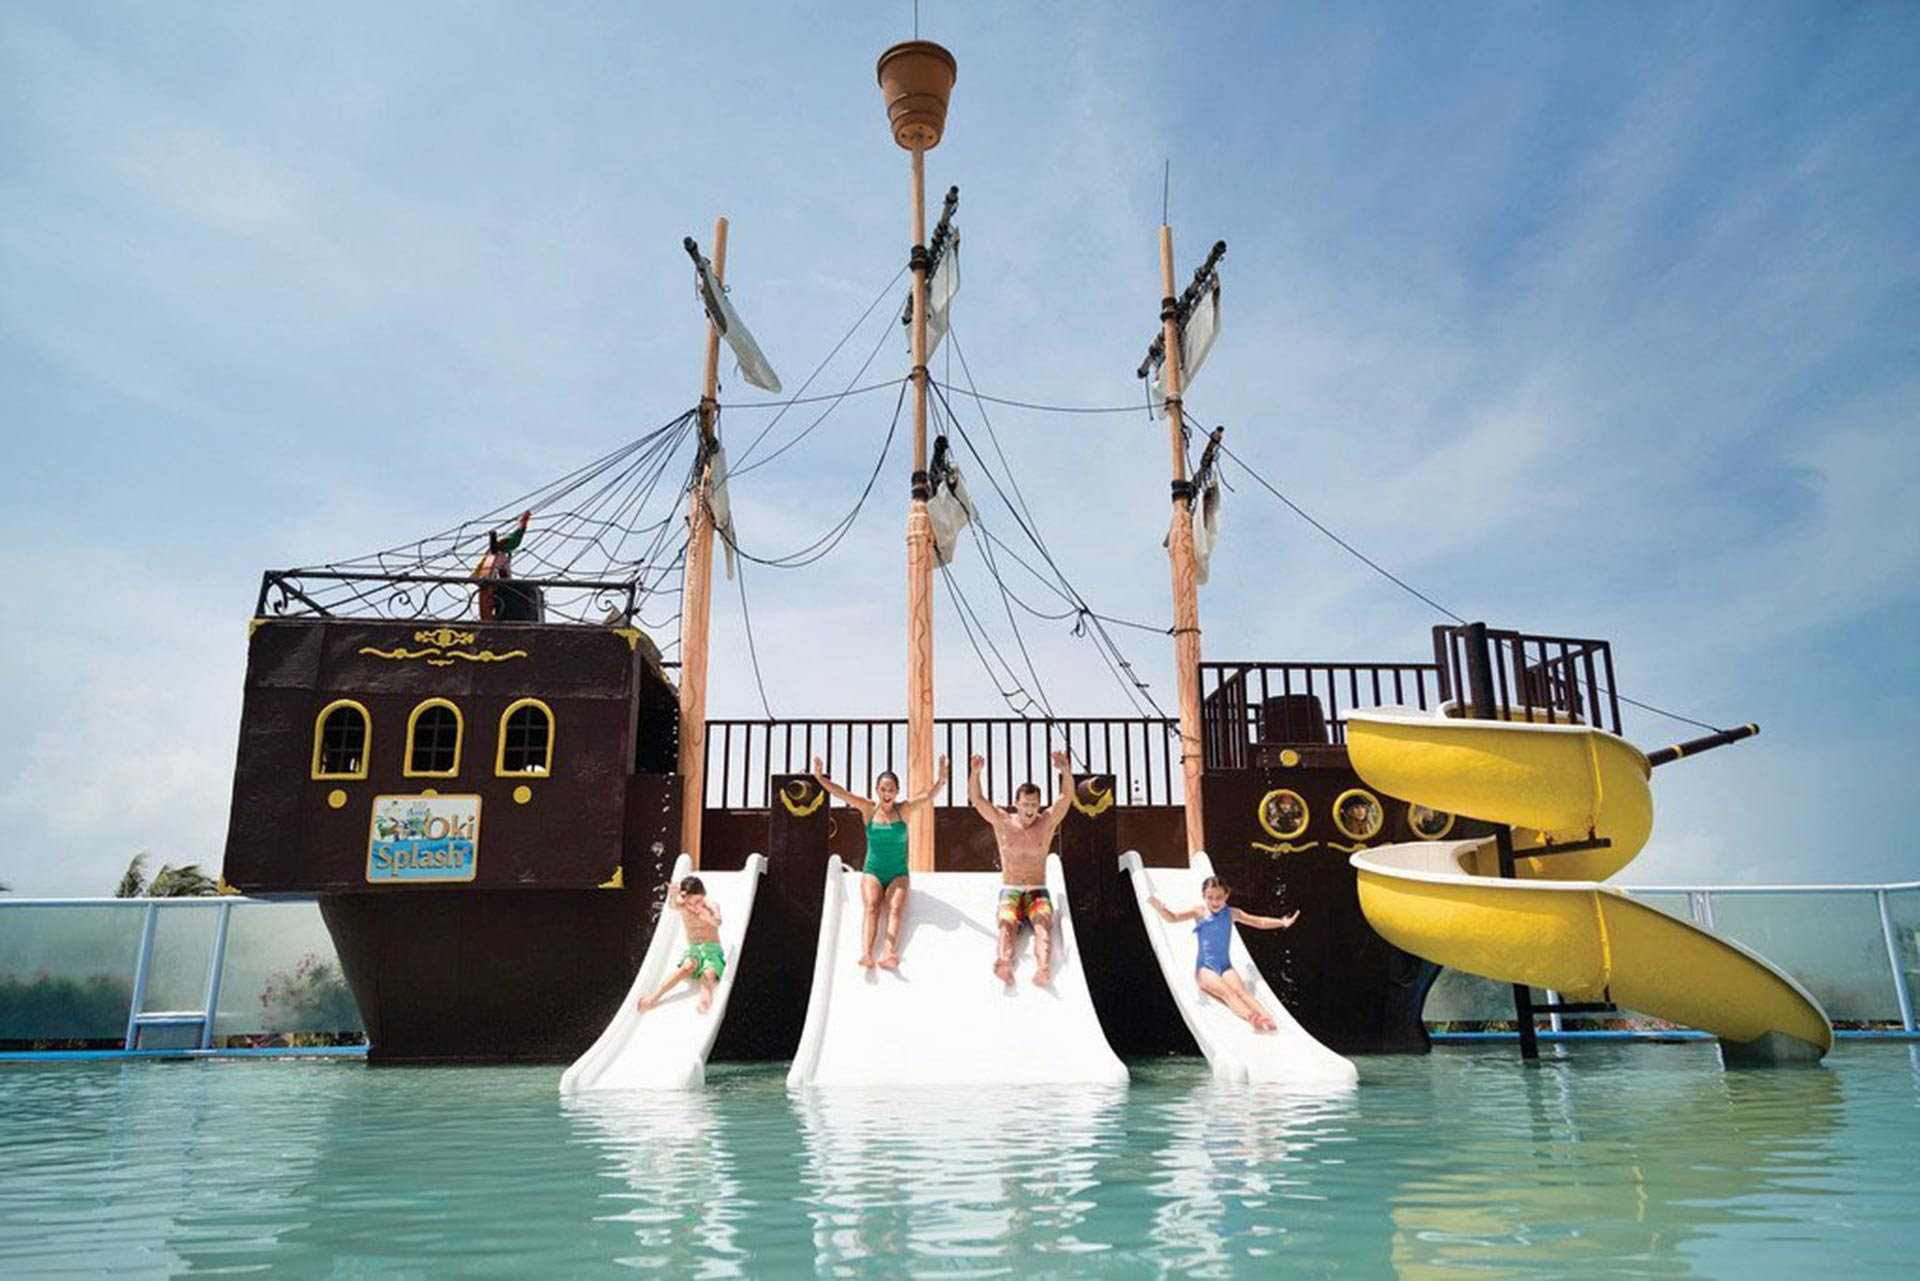 The water park at Panama Jack Resorts Cancun; Photo Courtesy of Panama Jack Resorts Cancun